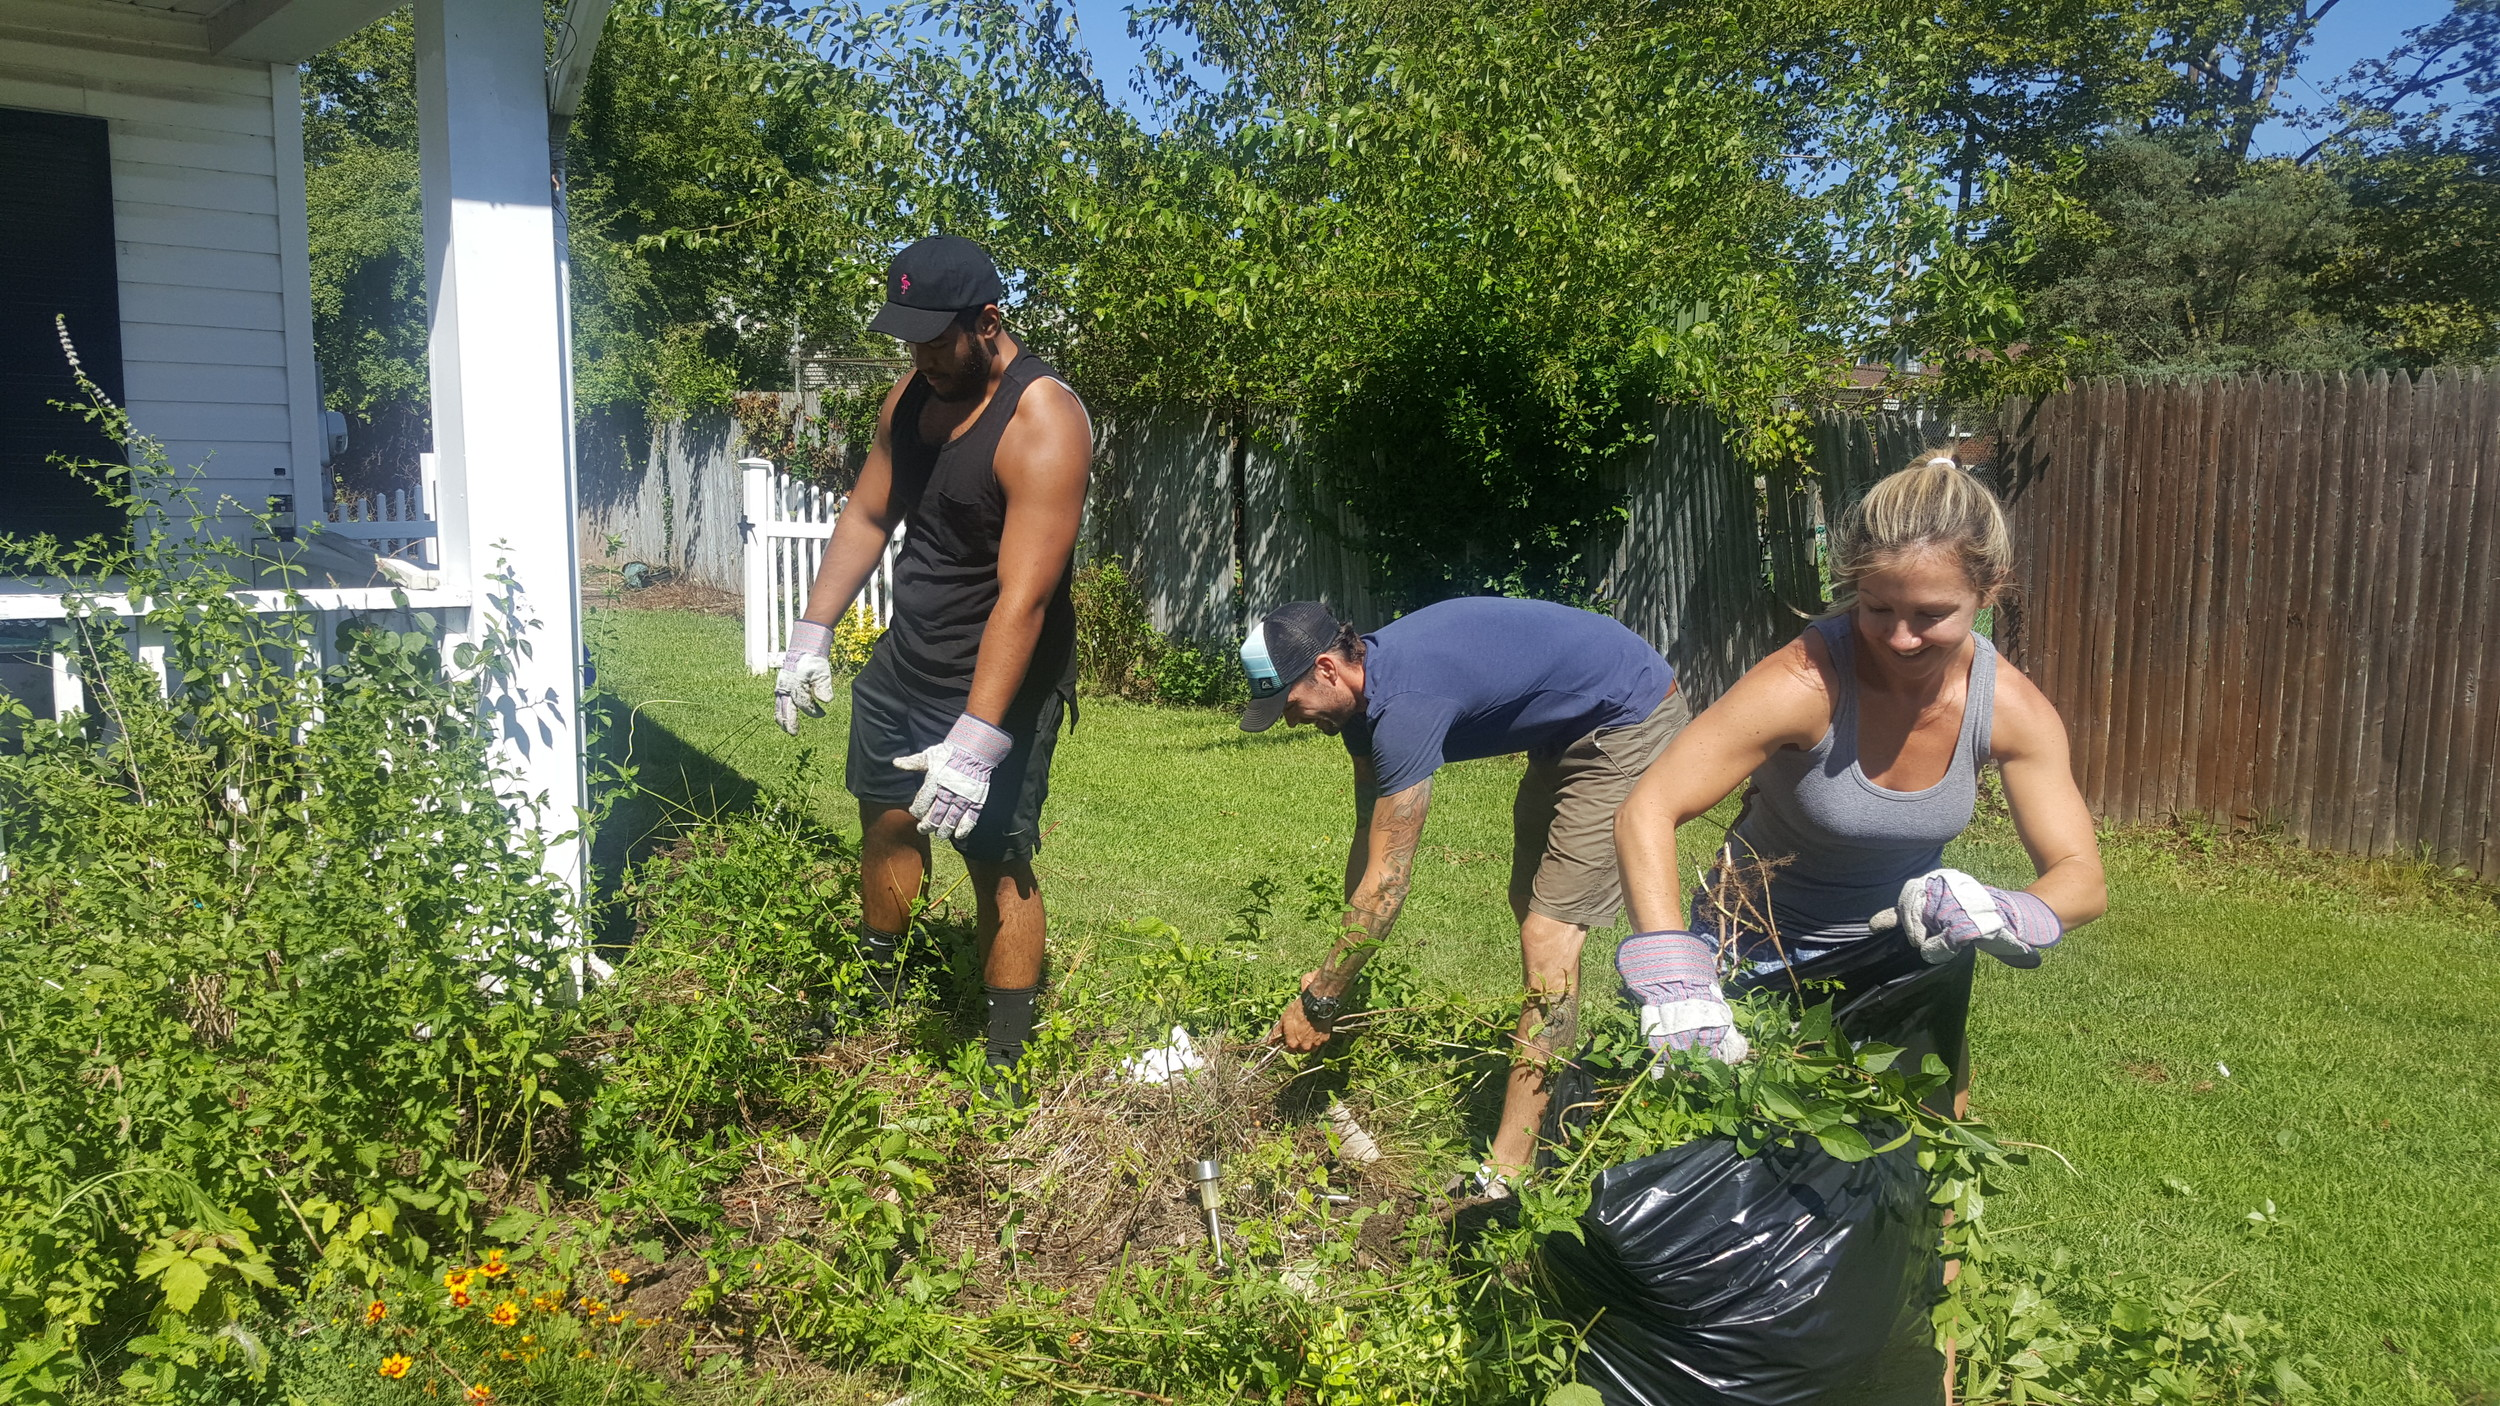 On Sunday, Long Beach real estate agent, Suzanne Wildes, right, her husband, Charles Wildes, center, and friend Danny Alicea, left, helped Collins clean up her father's home.